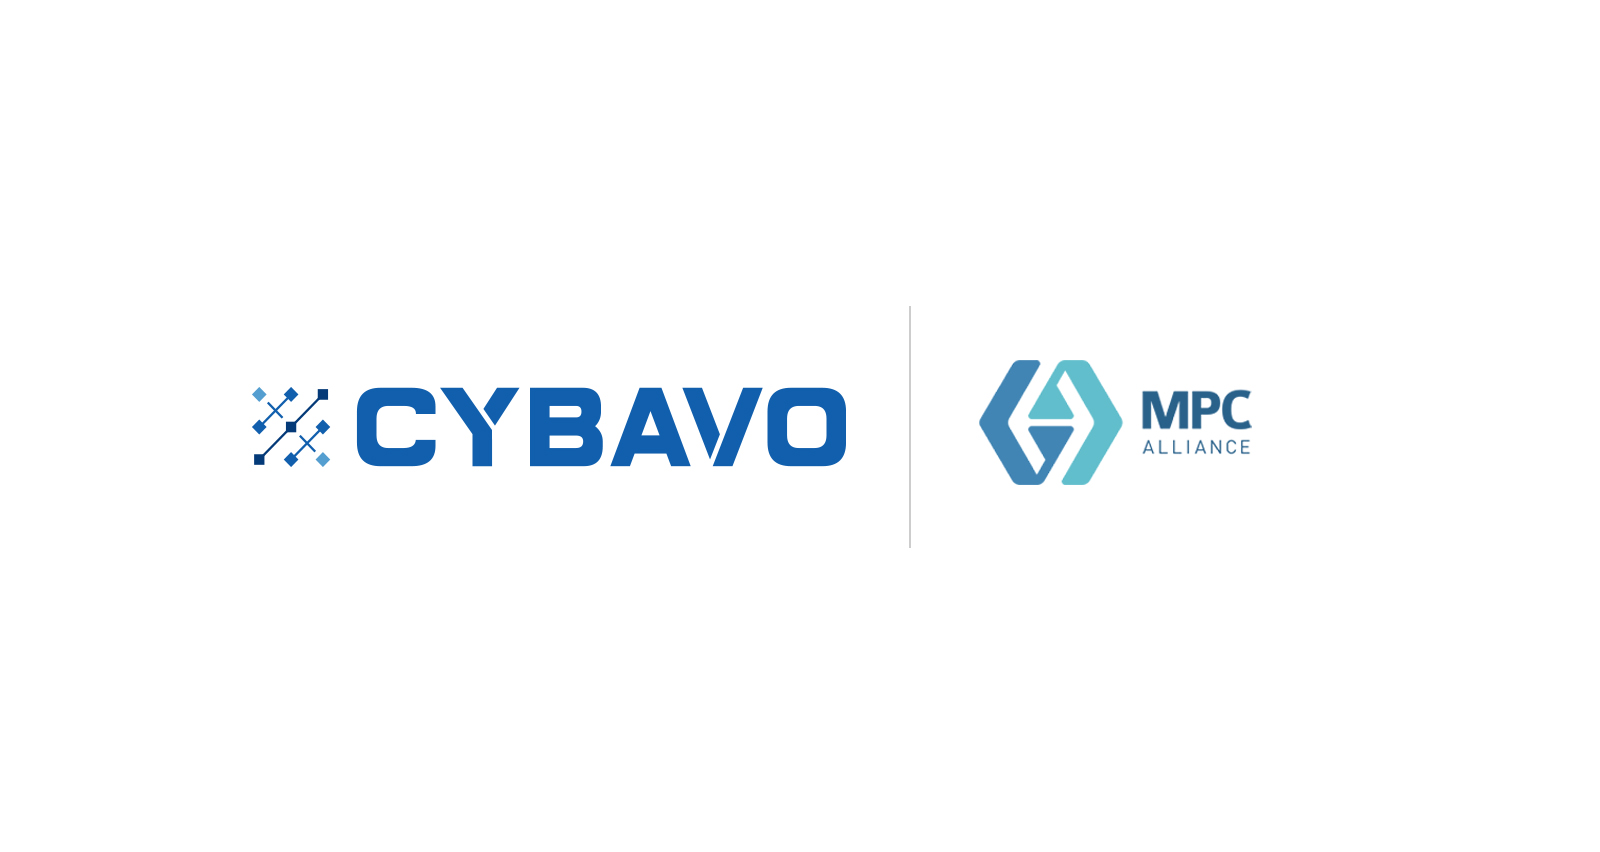 CYBAVO joins the MPC alliance as founding member